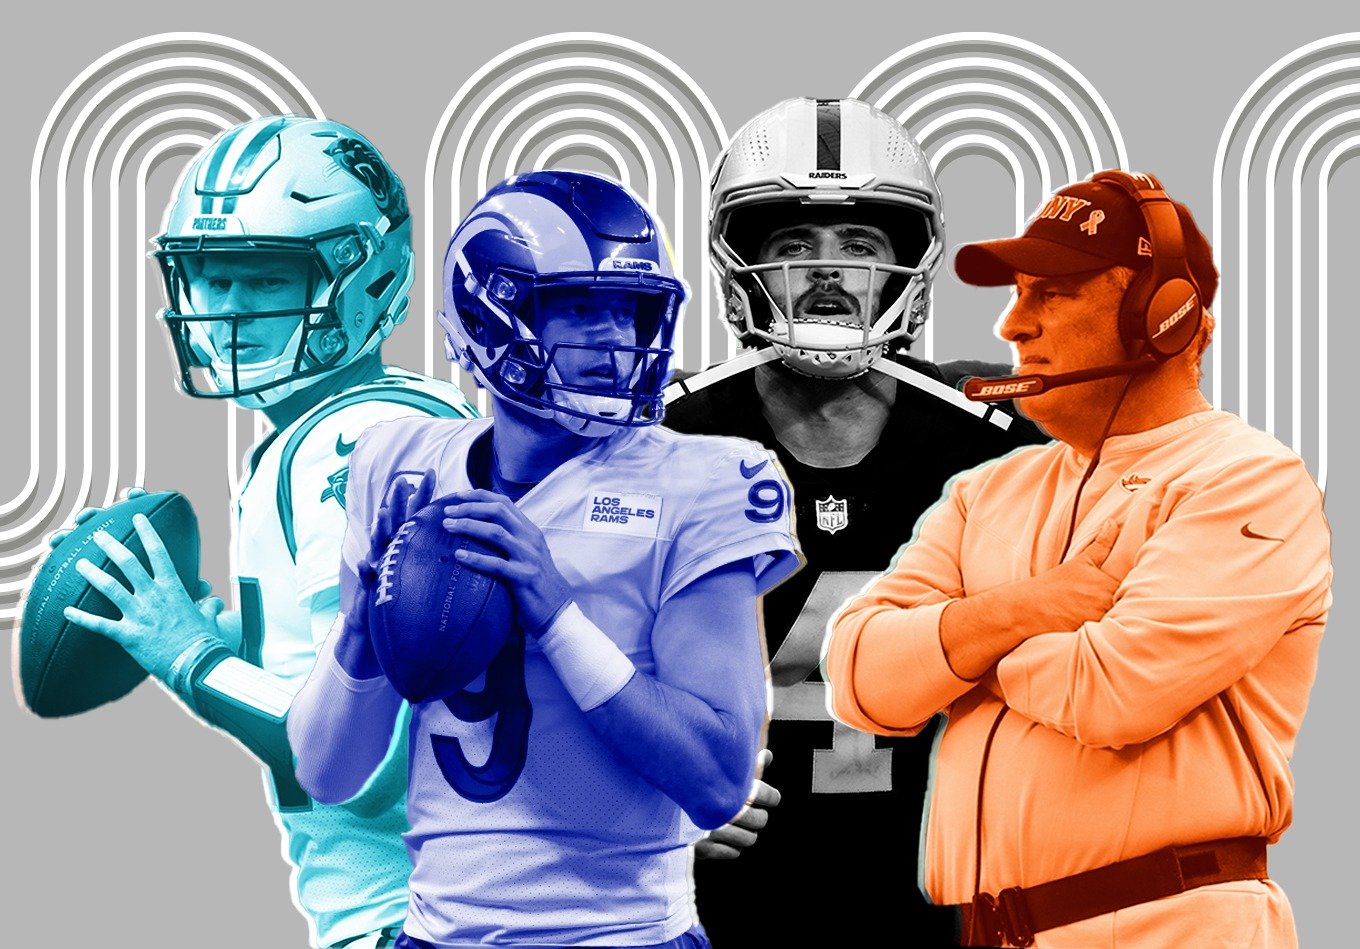 Cover 4: How Many of the NFL's Five Unbeatens Will Get to 4-0?